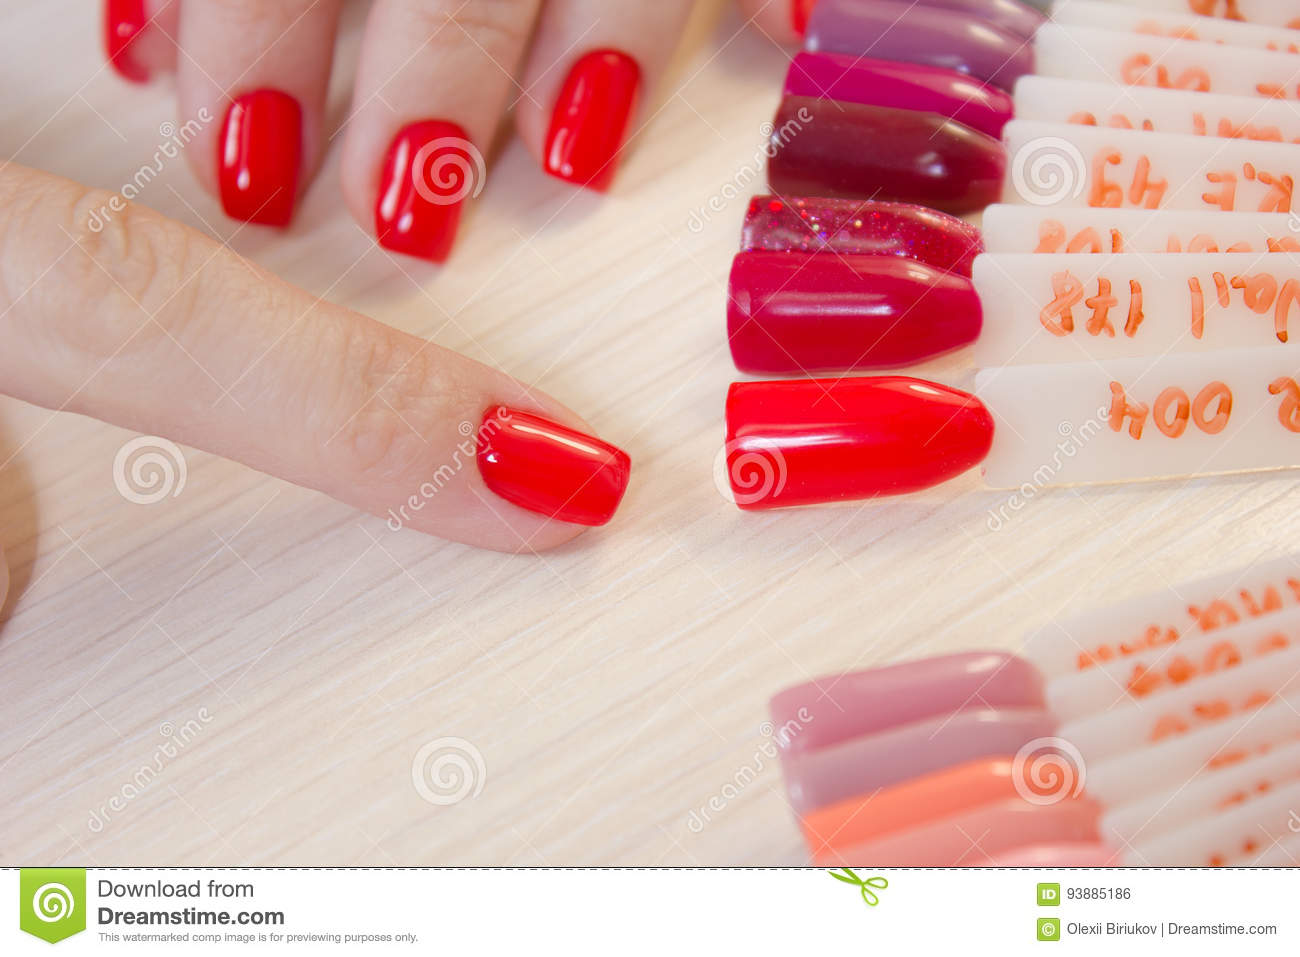 Top view woman selects yellow color shellac nail polish.Nail technician shows the color palette of nail services in